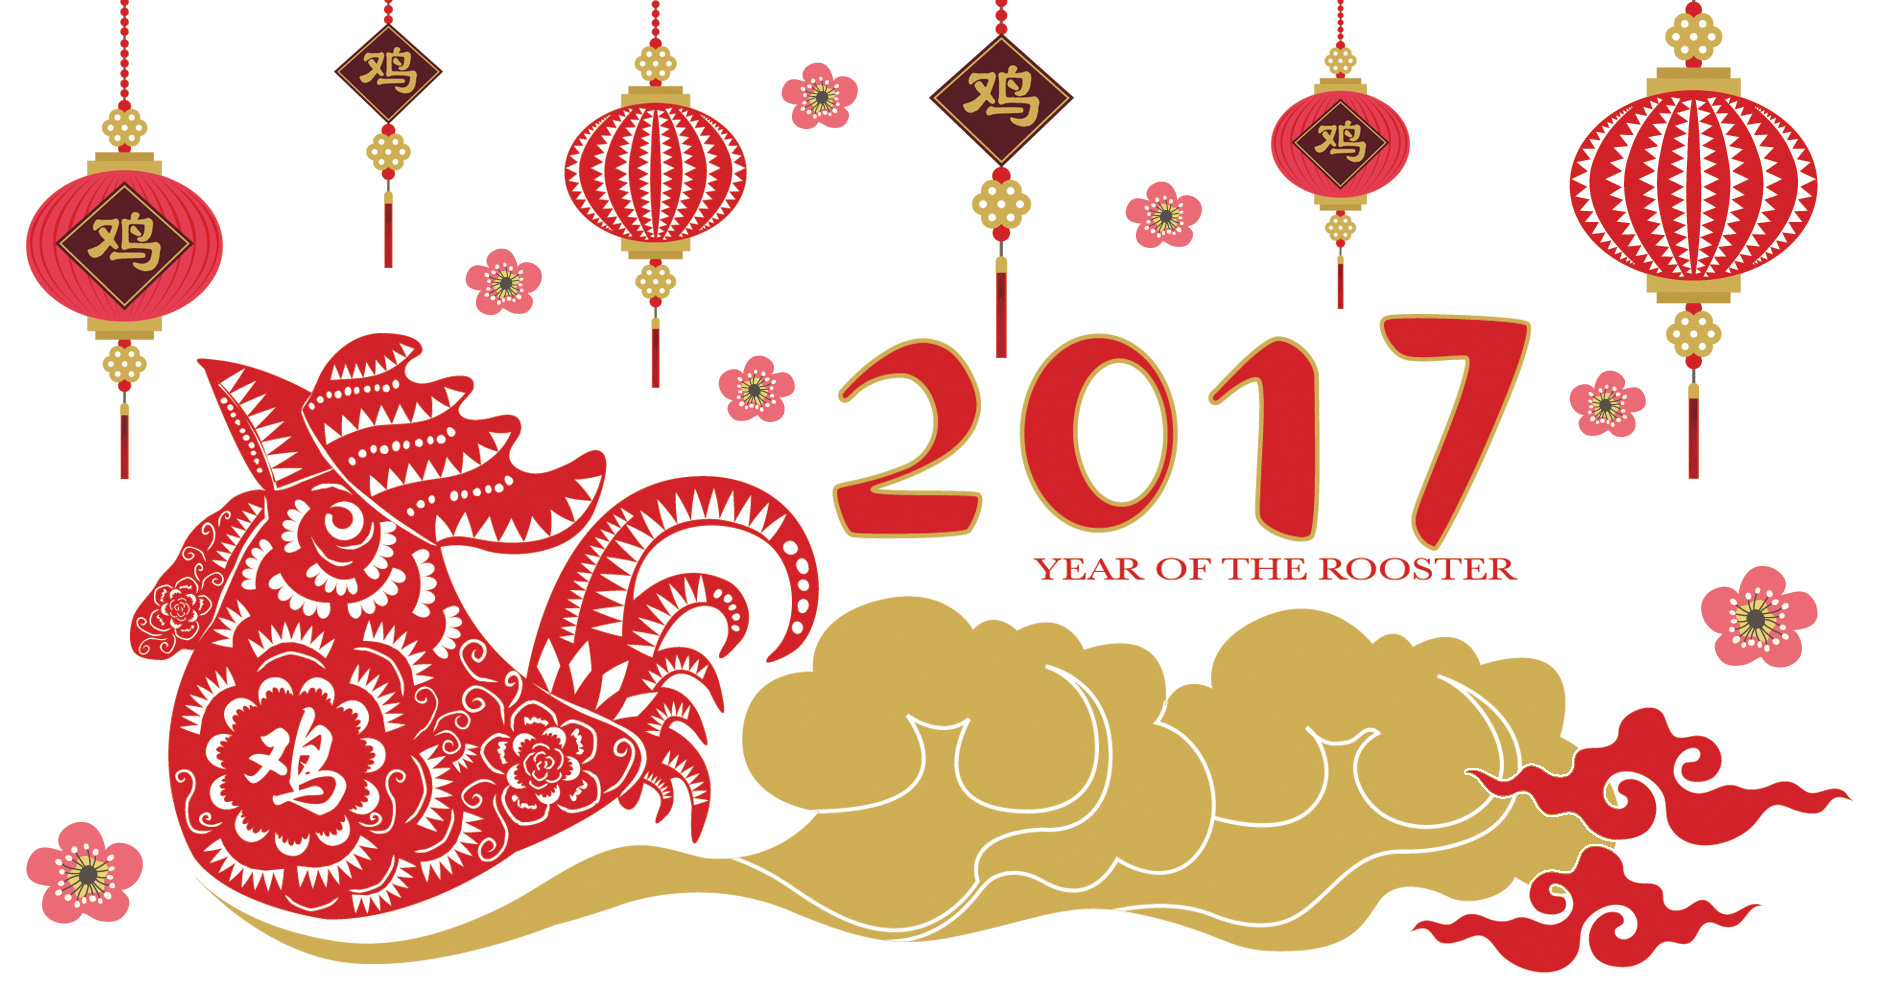 Happy Chinese New Year: 2017 Is The Year Of The Rooster